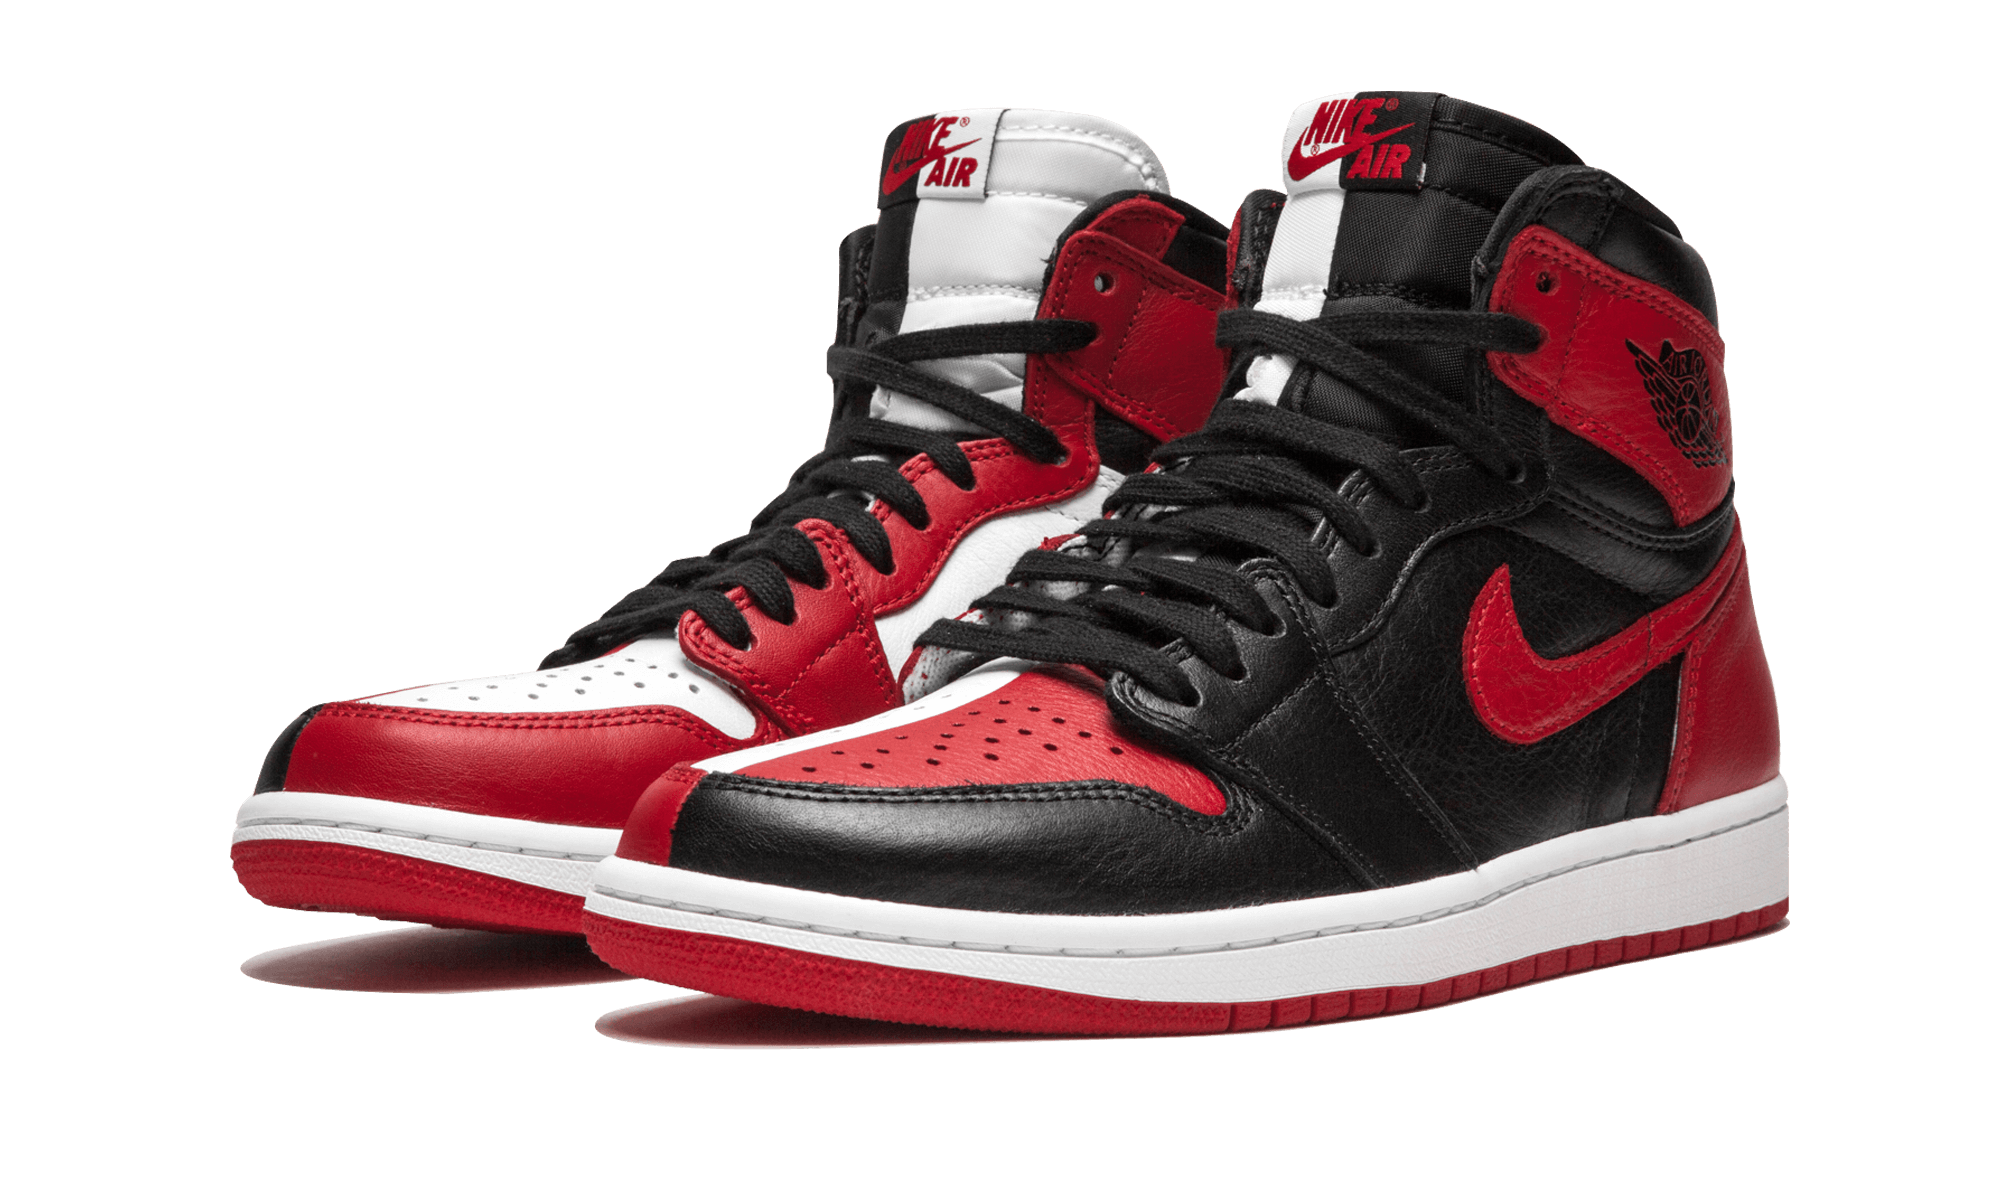 c134cdfc087 In 2018 Jordan Brand combined two of the most iconic Air Jordan 1 colorways  of all